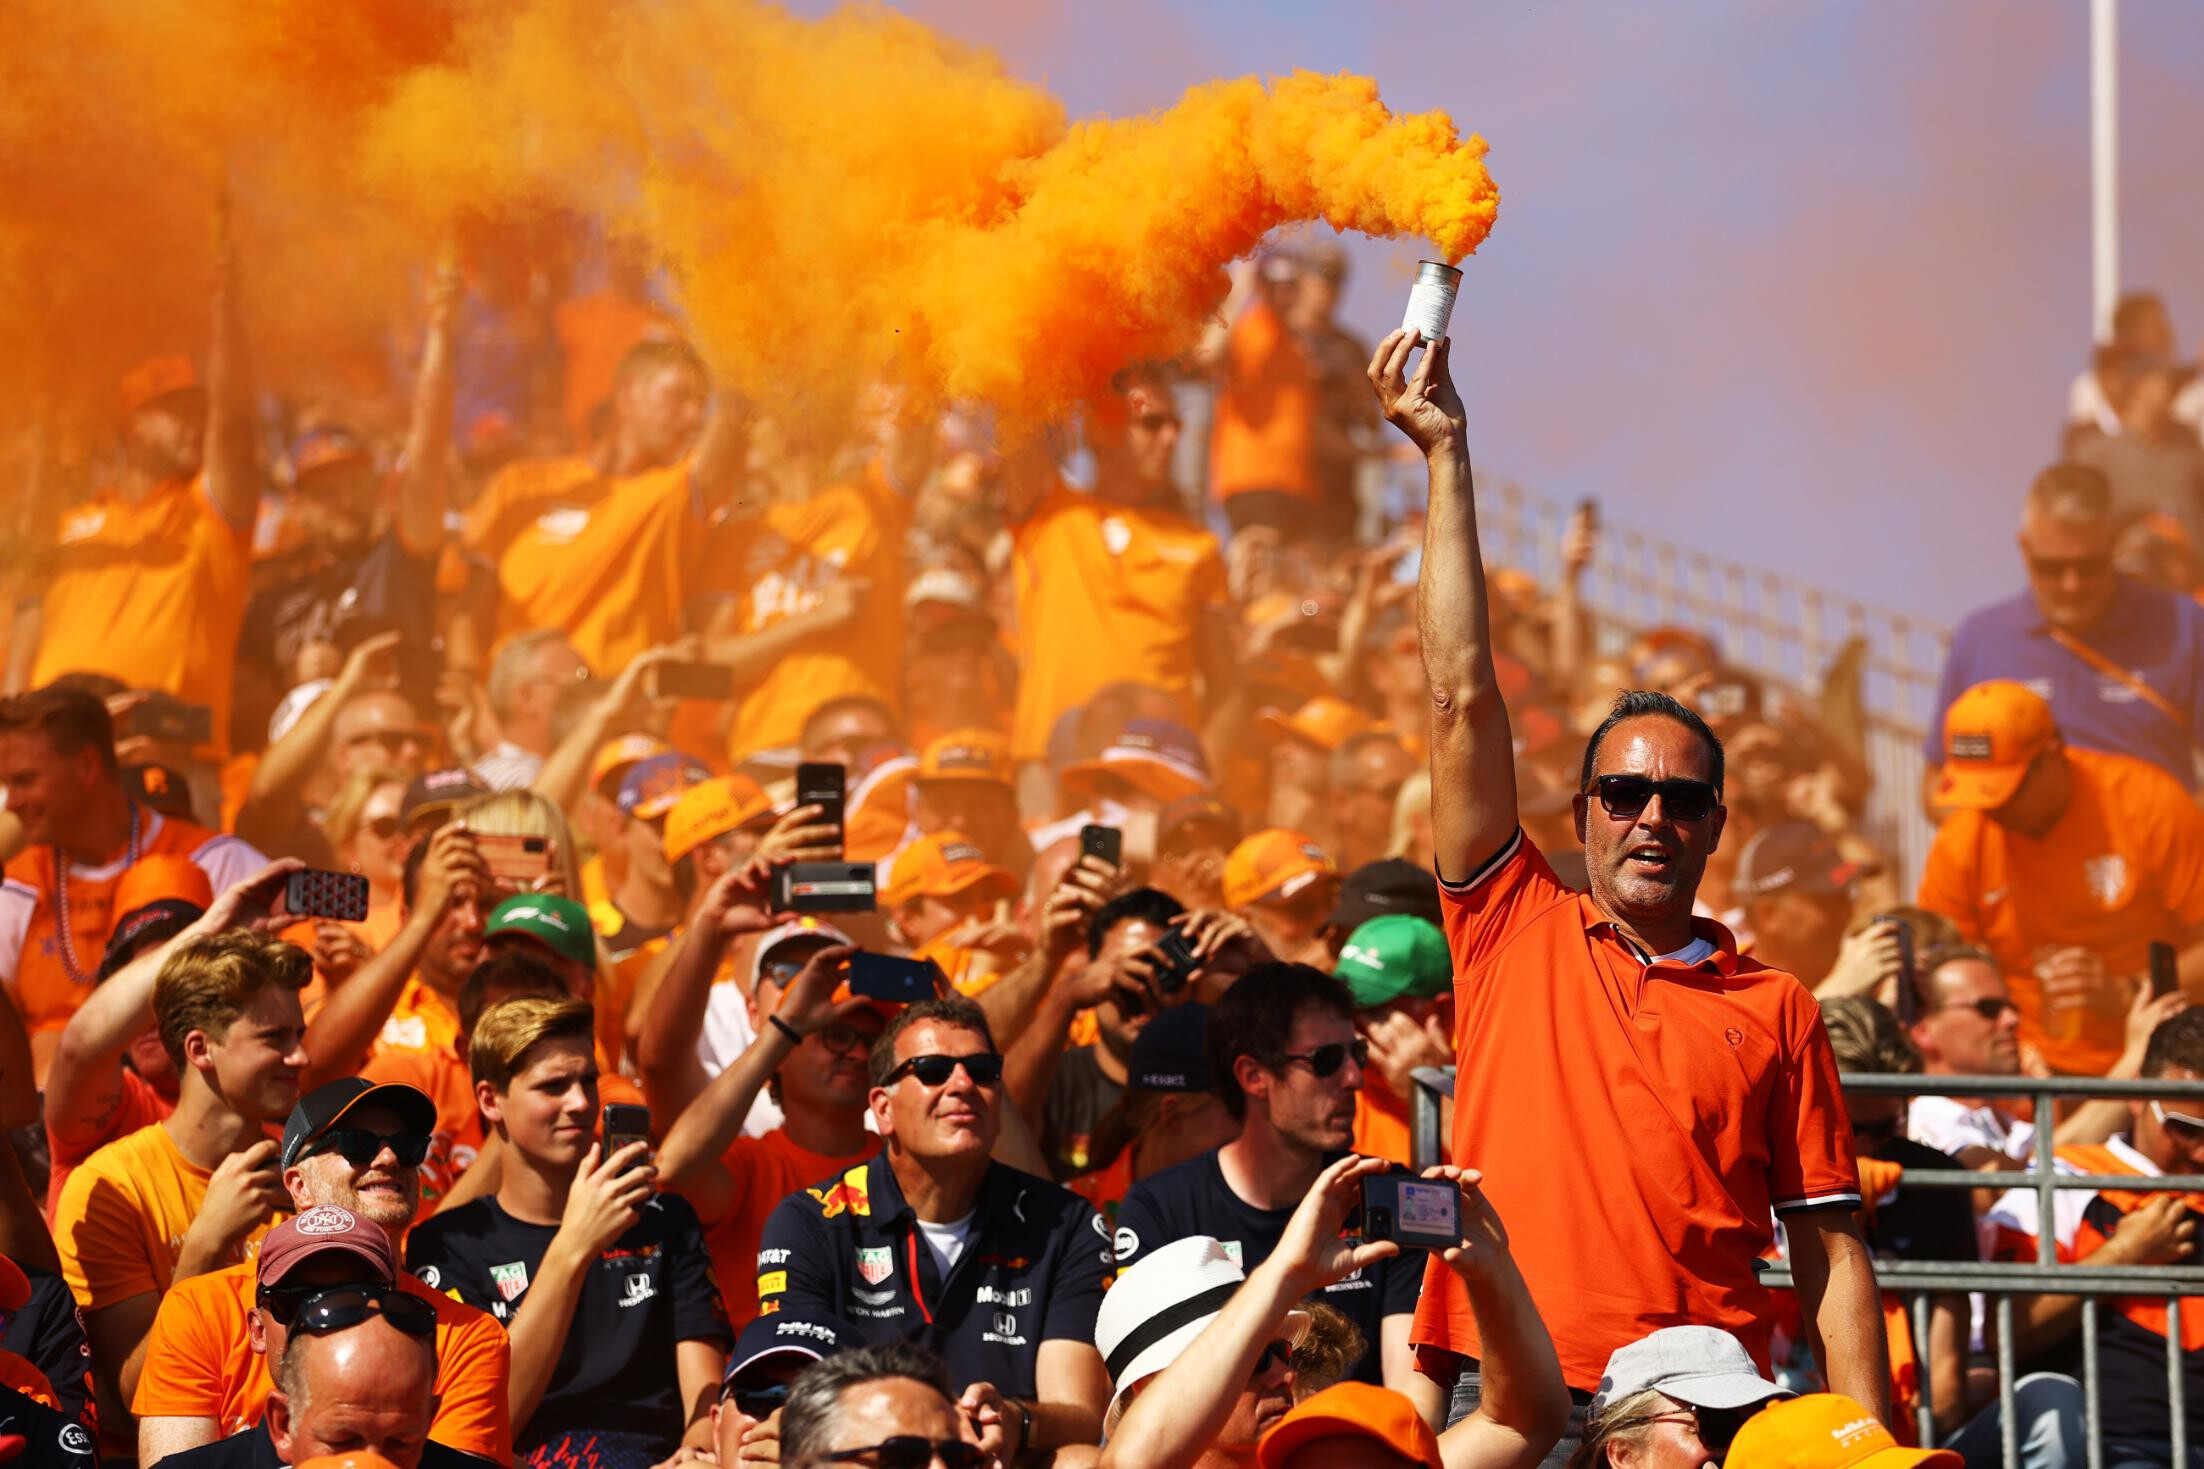 Max Verstappen wins Dutch Grand Prix to the delight of home fans